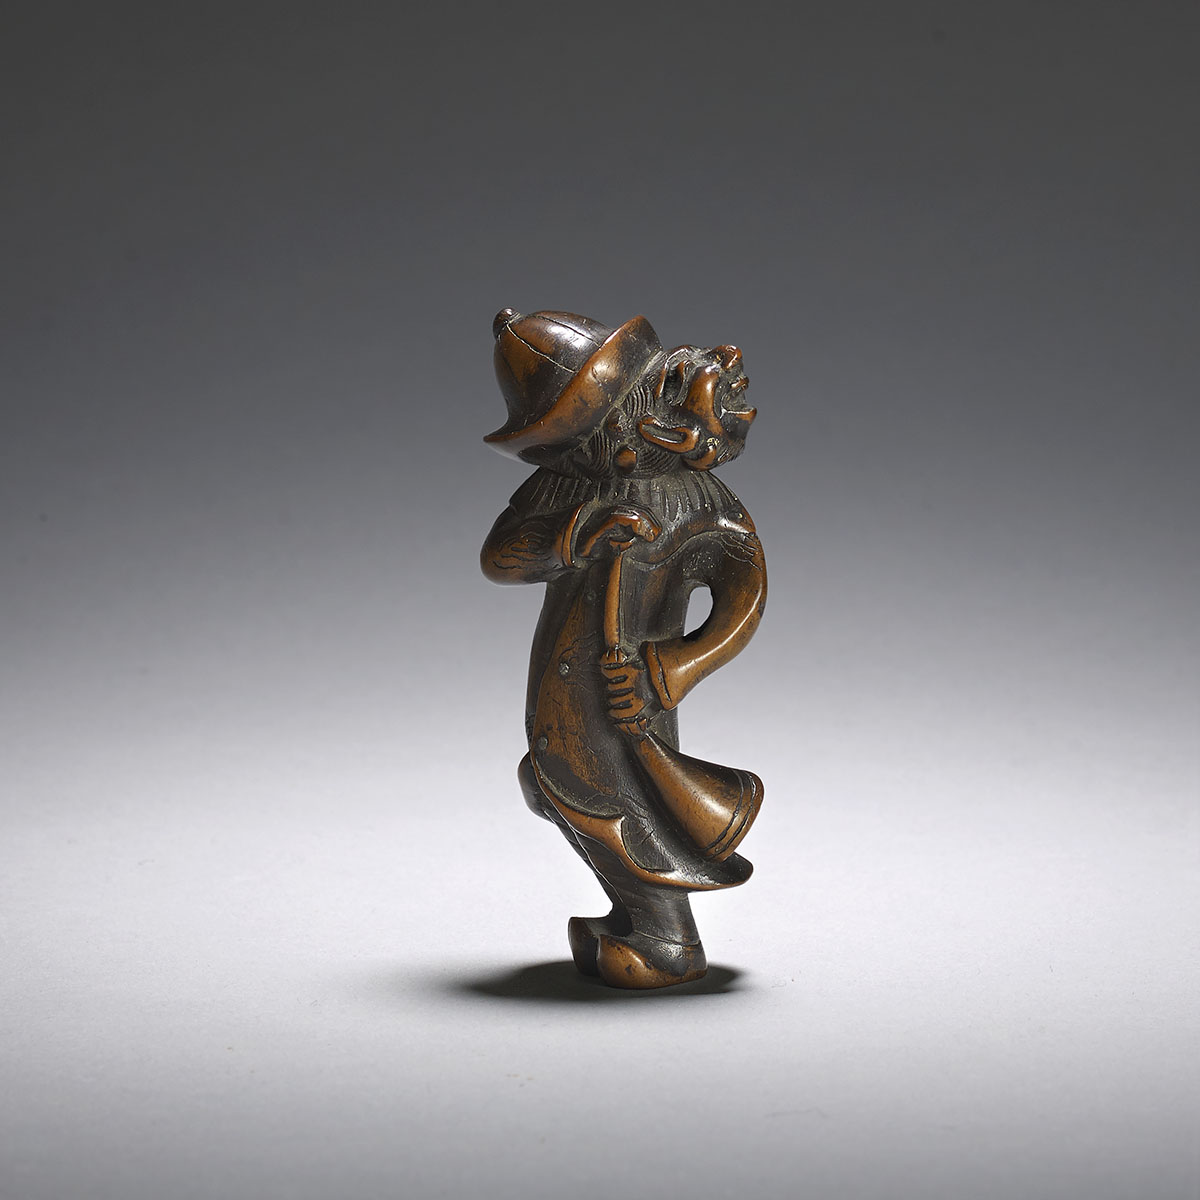 Wood netsuke of a dutchman